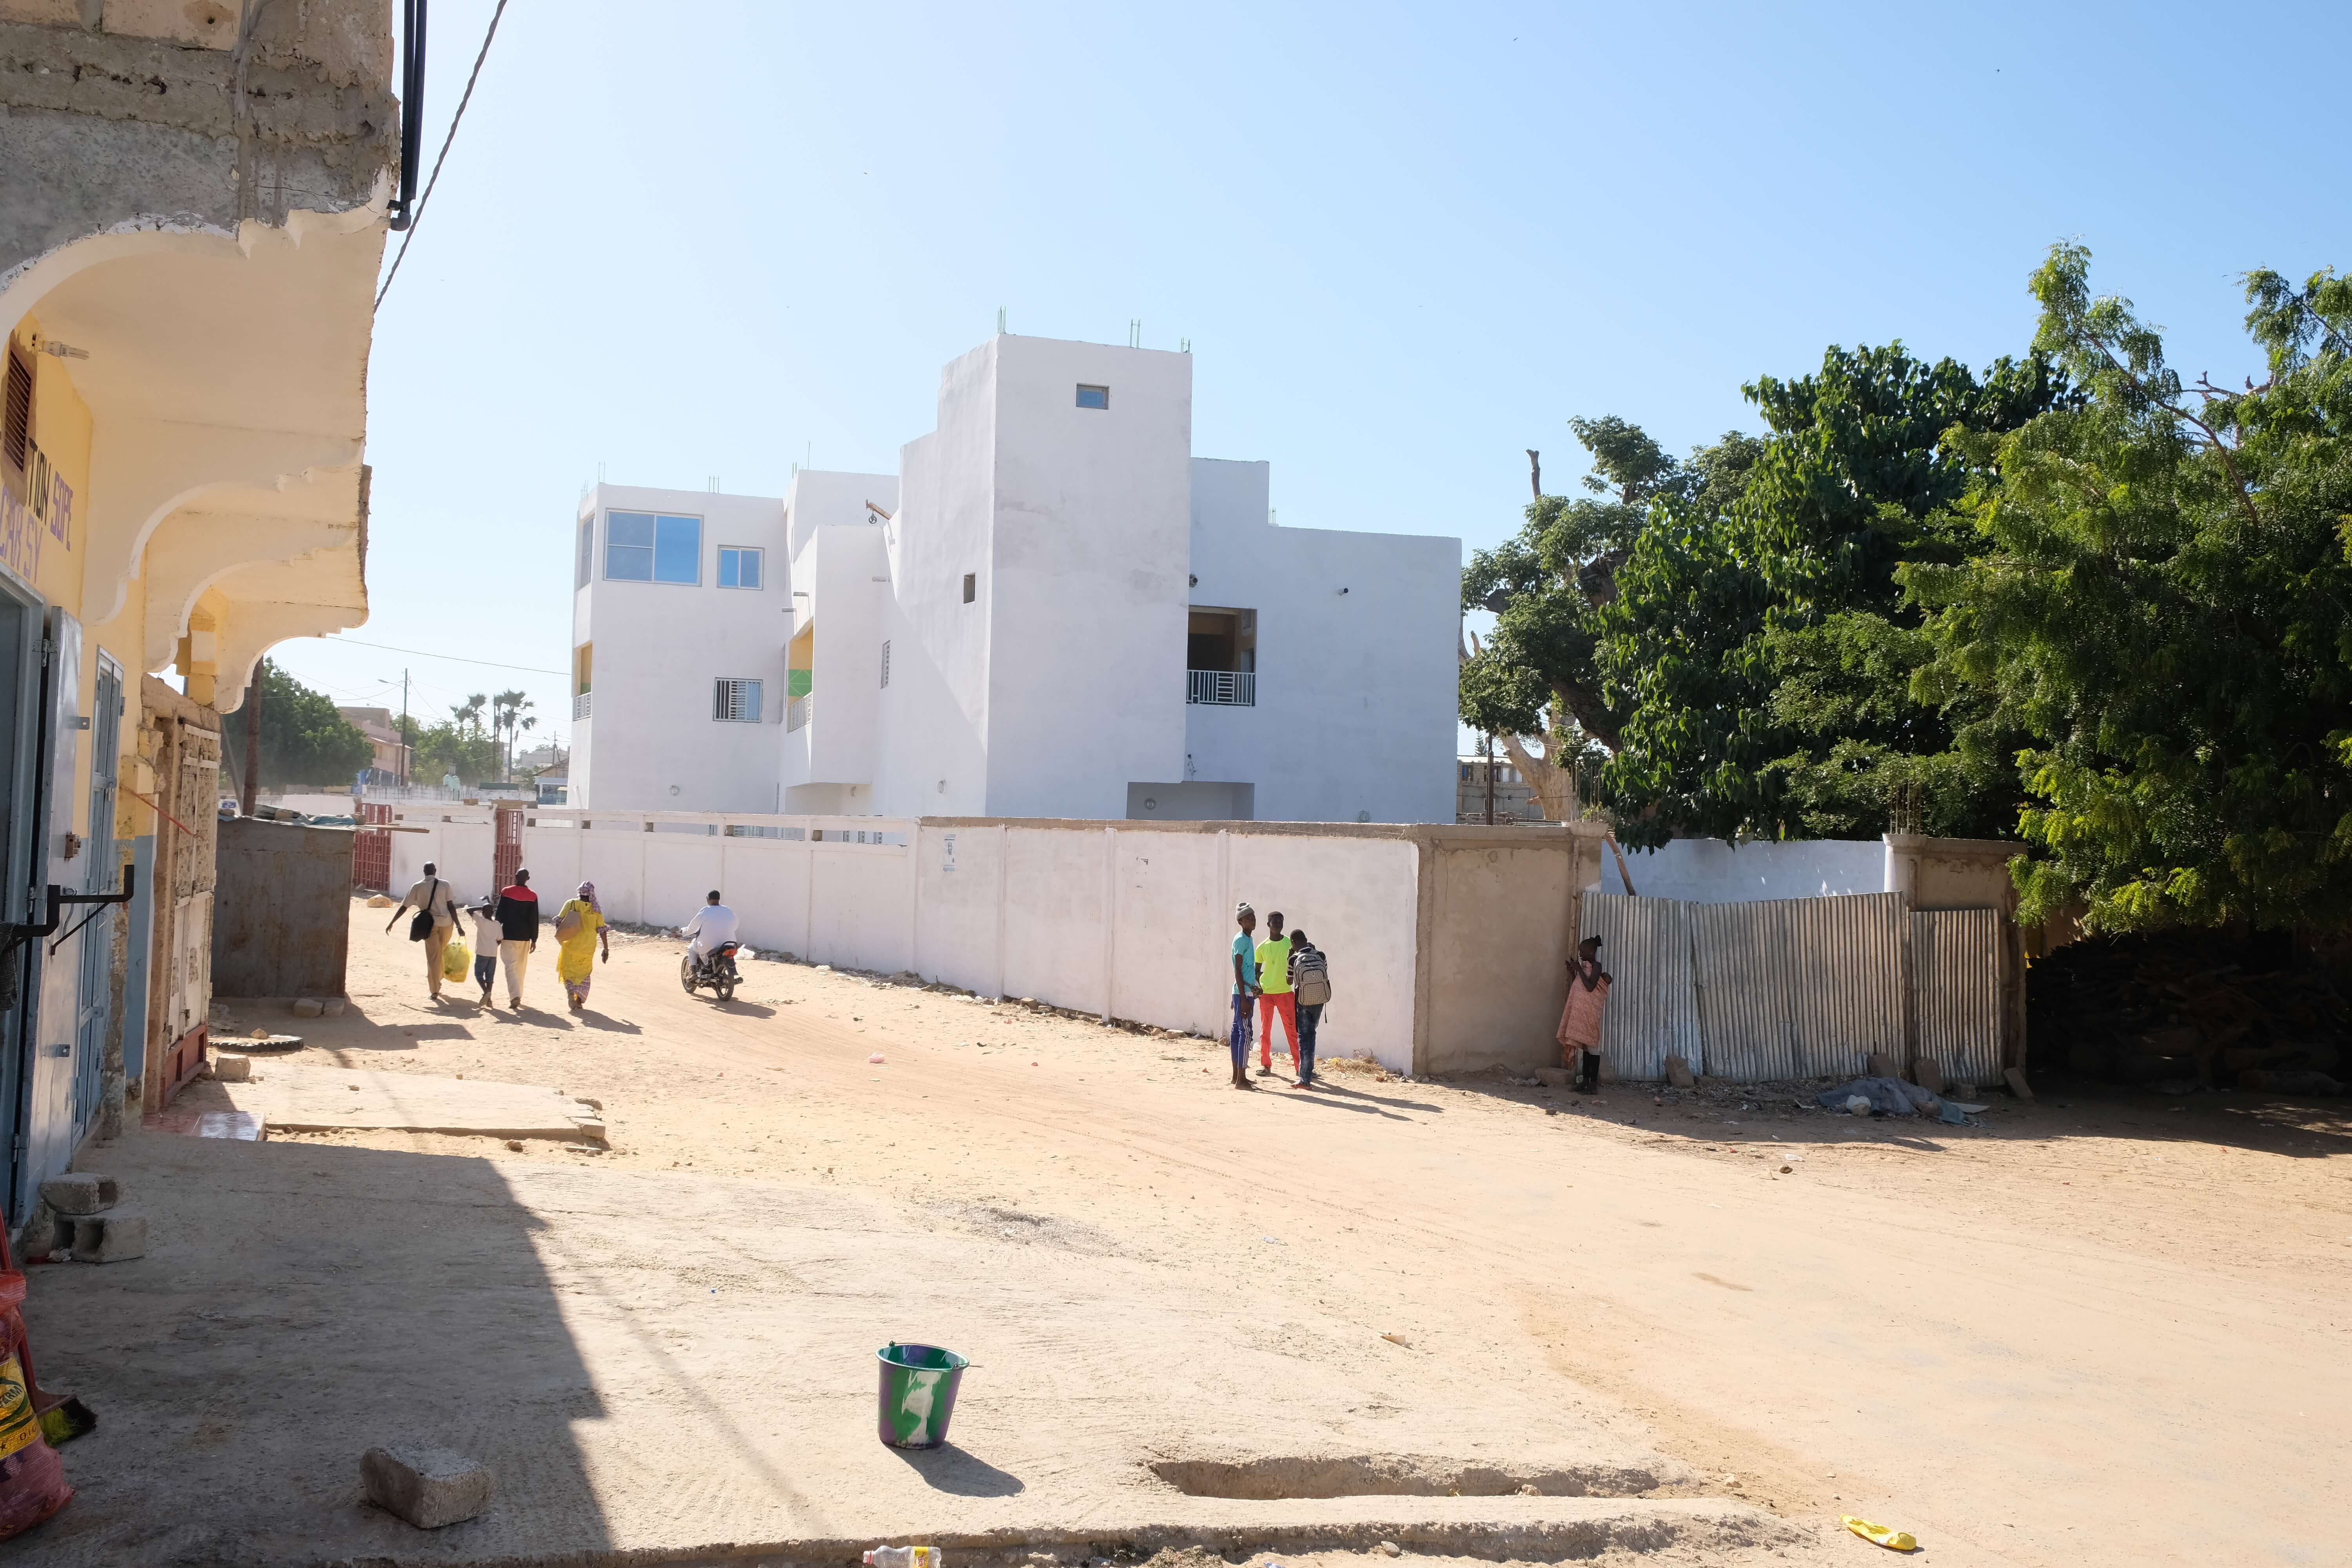 Philia Foundation - PUBLIC HEALTH PROJECTS REGIONAL HOSPITAL AND HEALTH CLINIC (DISPENSARY) THIES, SENEGAL